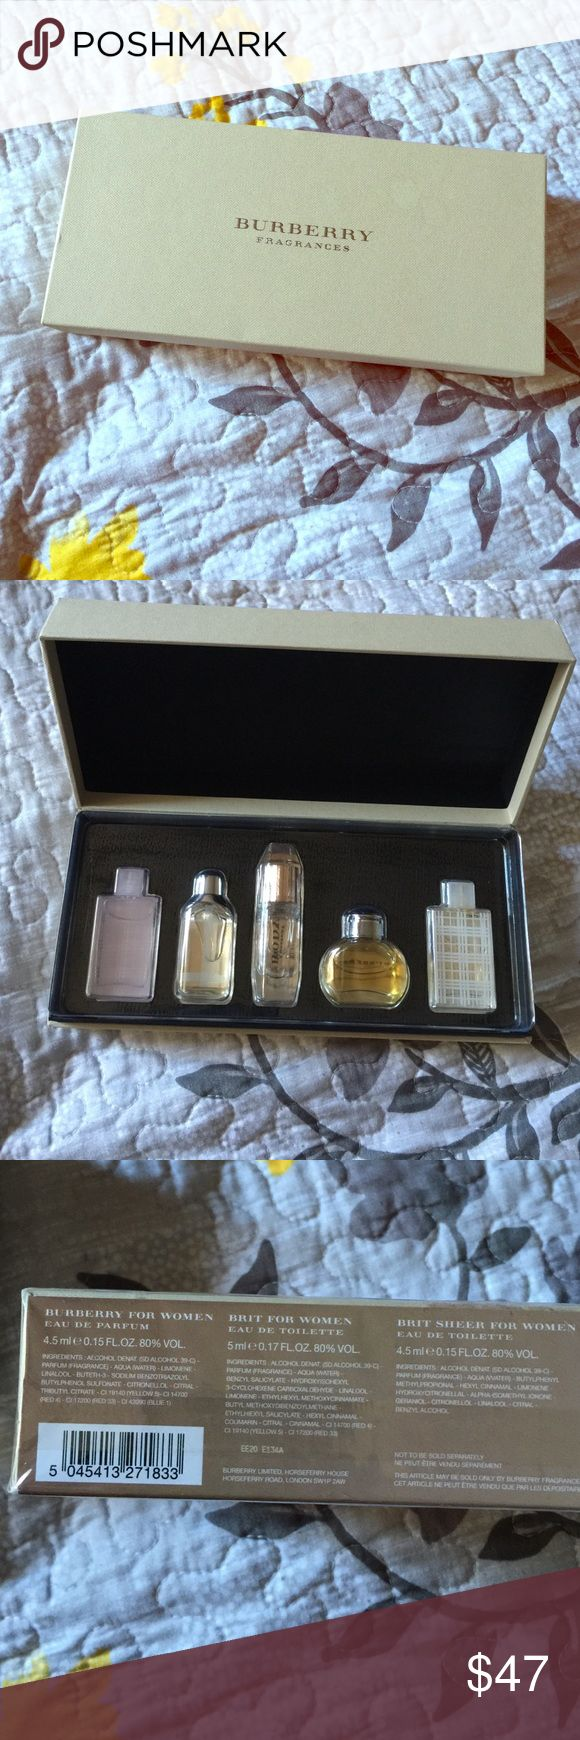 ✨Burberry Perfume Set✨ New, but opened the sealing to smell . 5 different Burberry fragrances in one box! Picture 3&4 shows description. I am selling another one brand new without seals opened for a higher price. This one is nothing different. Burberry Other